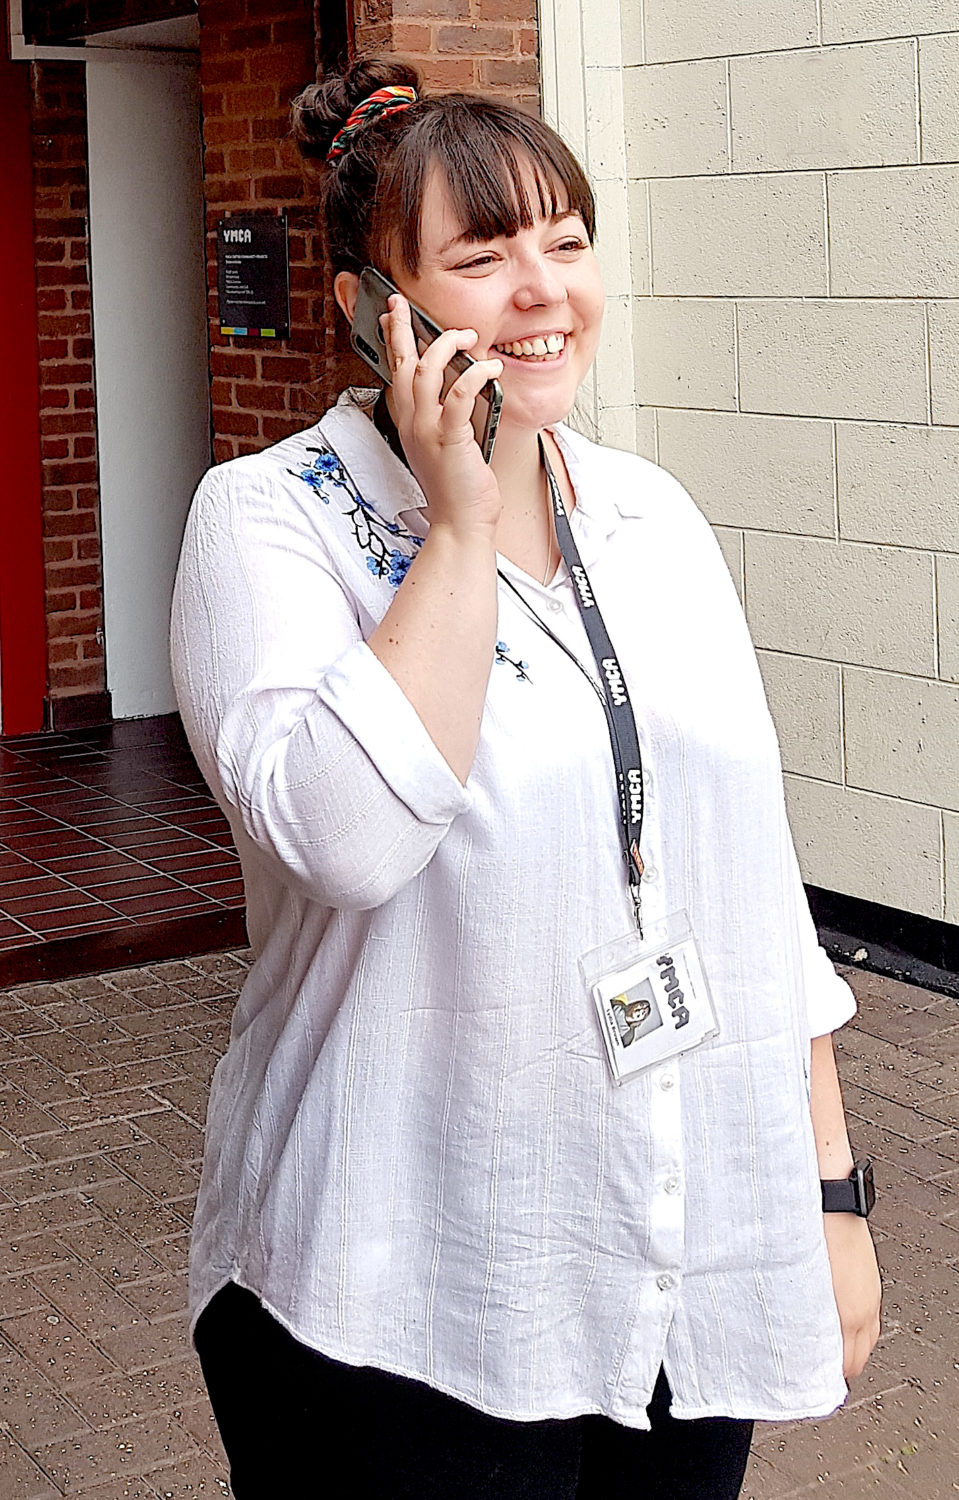 Lydia Brown talking on a mobile phone